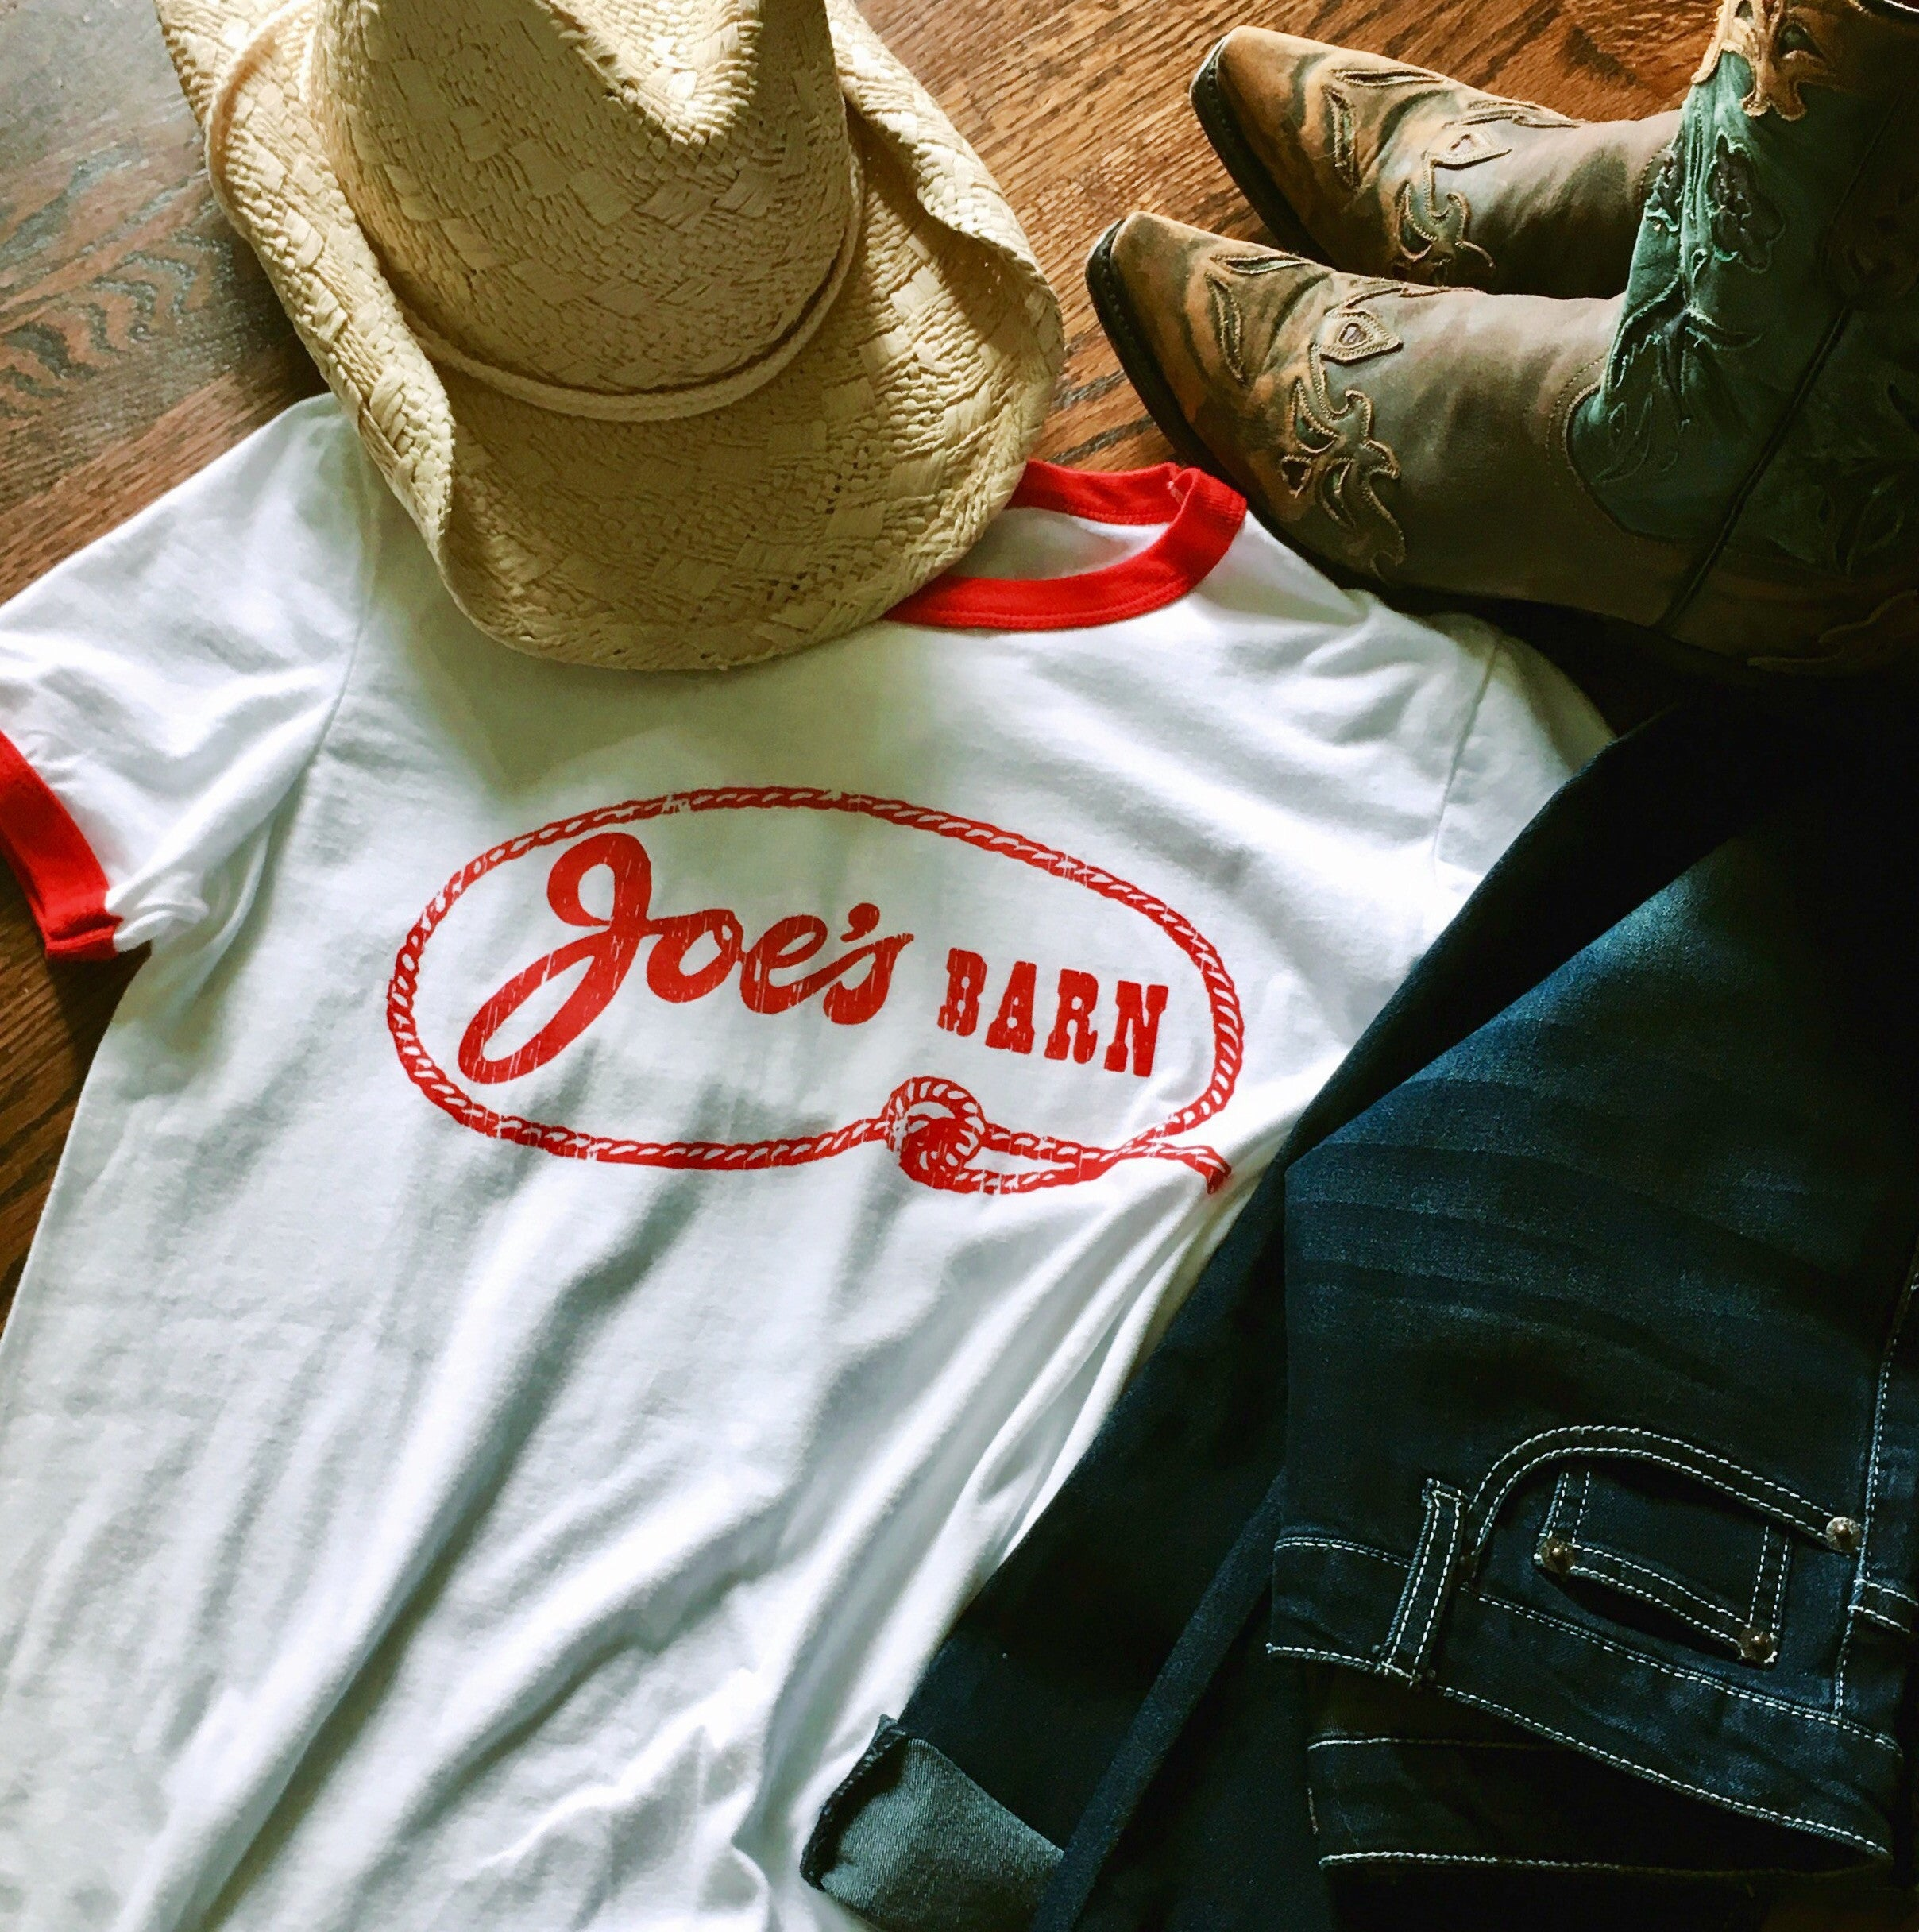 Historic Kansas City Joe's Barn Vintage logo printed in red on a white unisex short sleeve red ringer t-shirt - featured with cowboy hat, boots and jeans - Dalton Ink